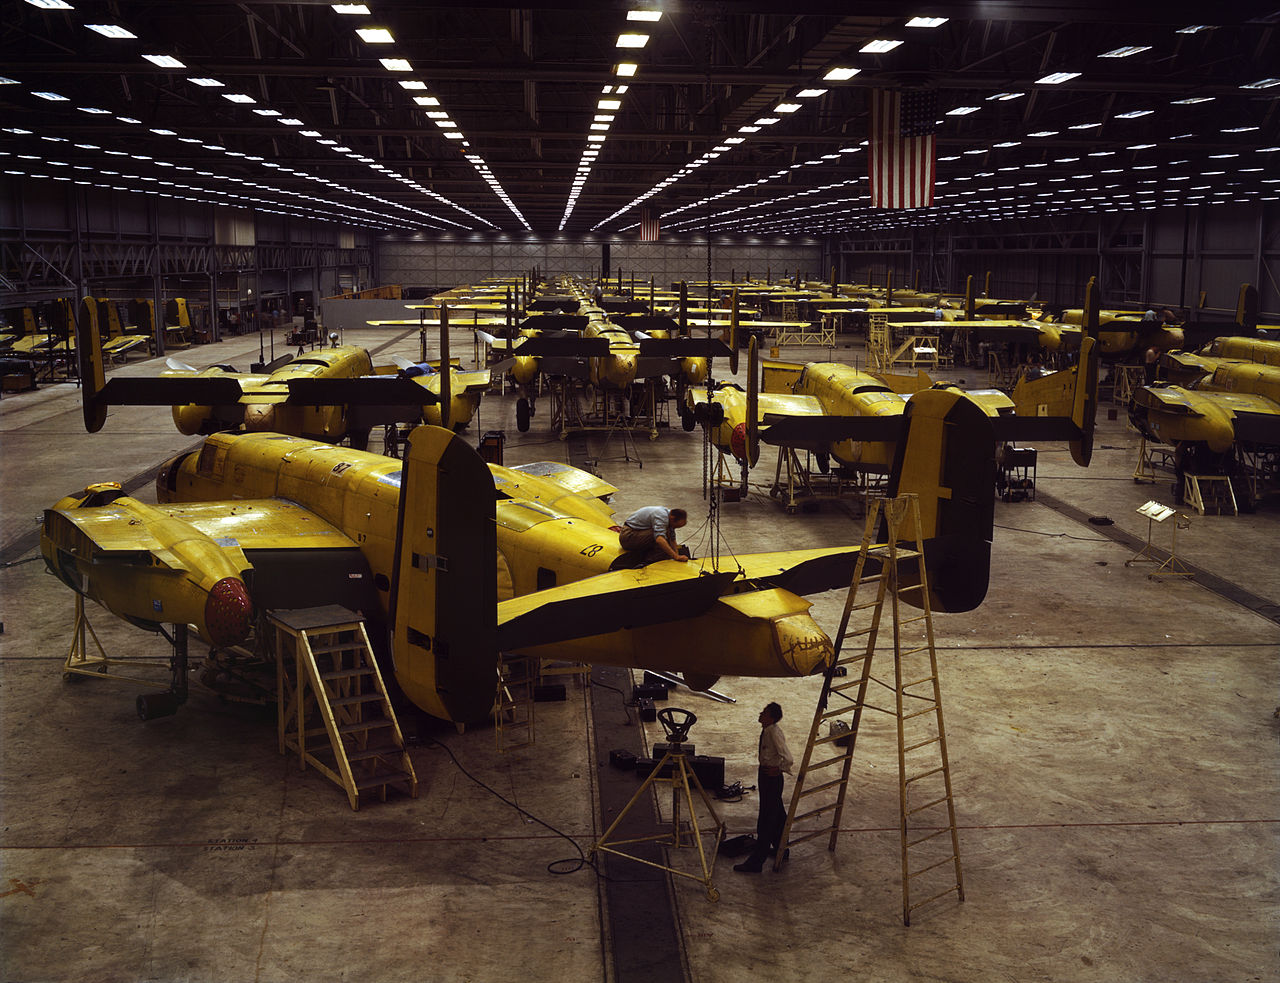 North American B-25 Mitchell production in Kansas City in 1942 Assembling the North American B-25 Mitchell at Kansas City, Kansas (USA). Reproduction digitized from original 4x5 color transparency.